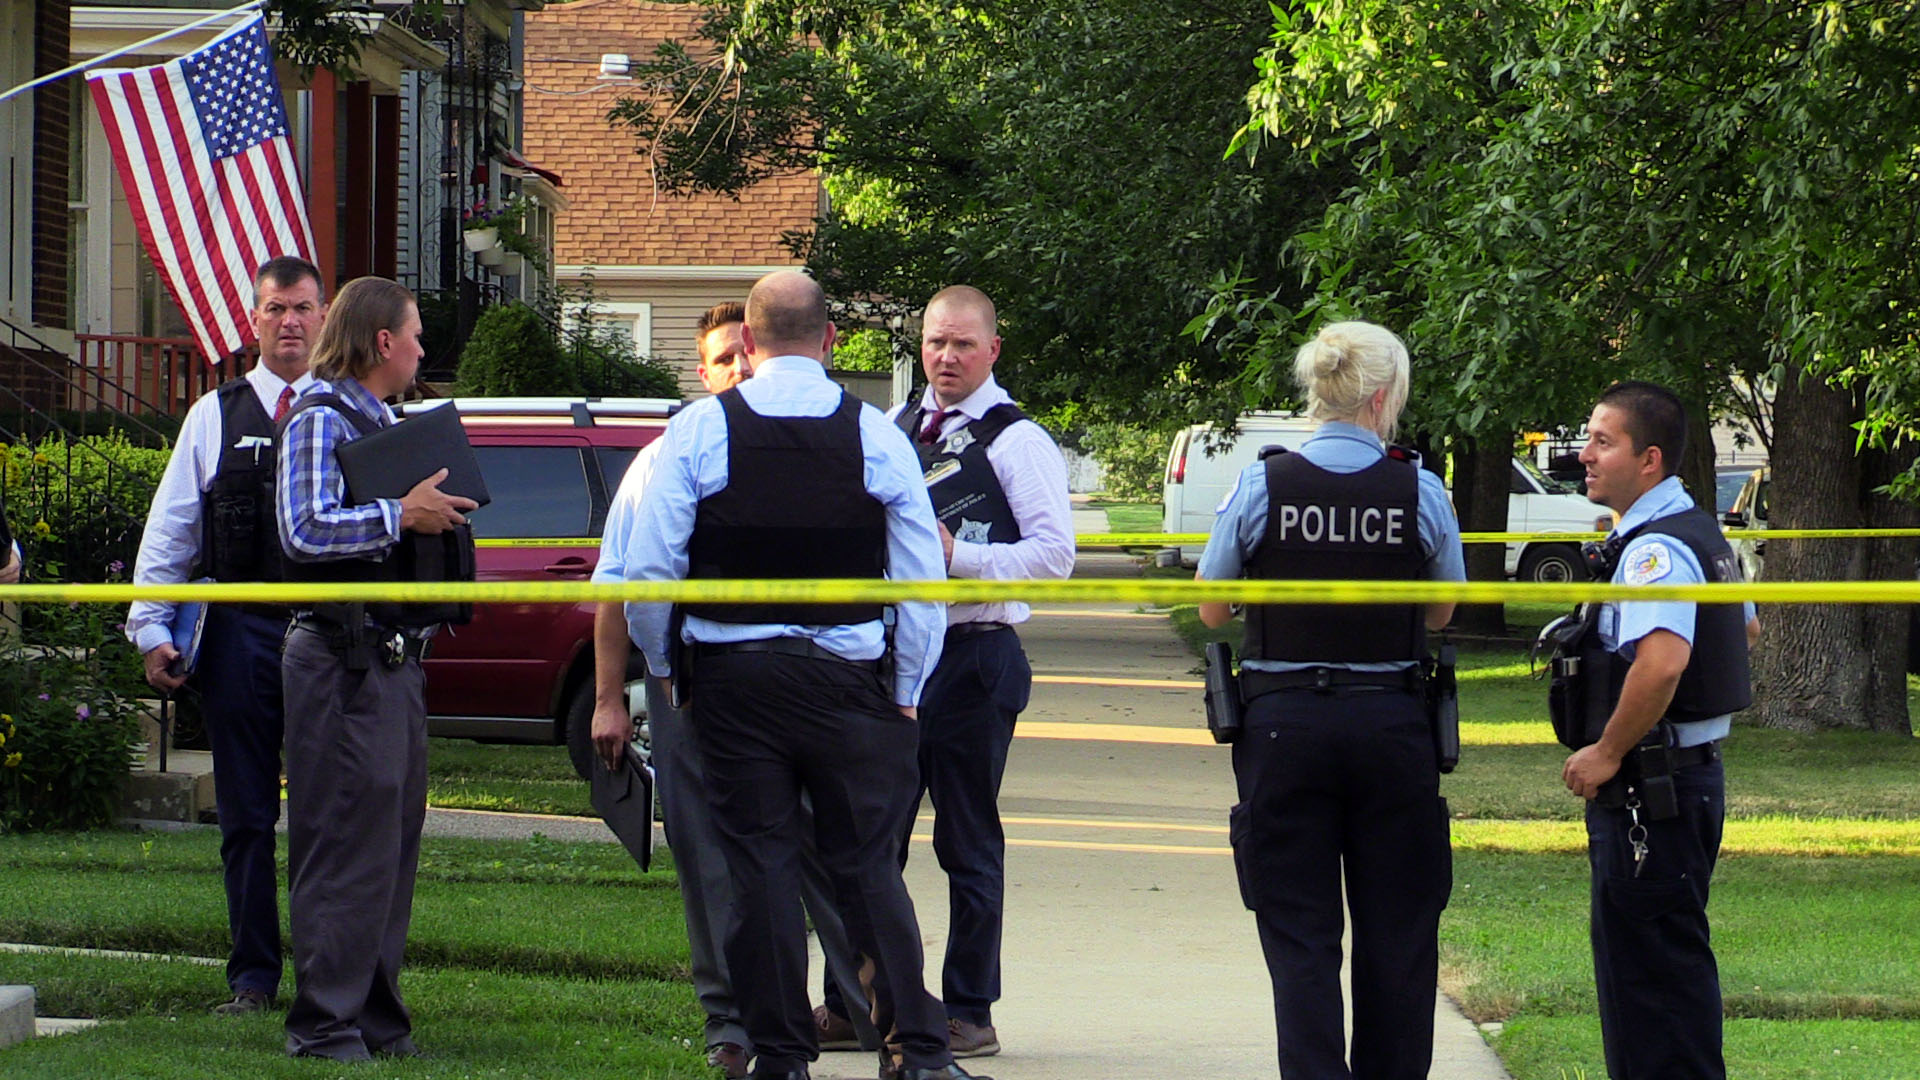 Chicago police investigate the scene where a 3 year old child was fatally shot, Sunday afternoon, in the 9600 block of South Escanaba Ave., in South Deering.